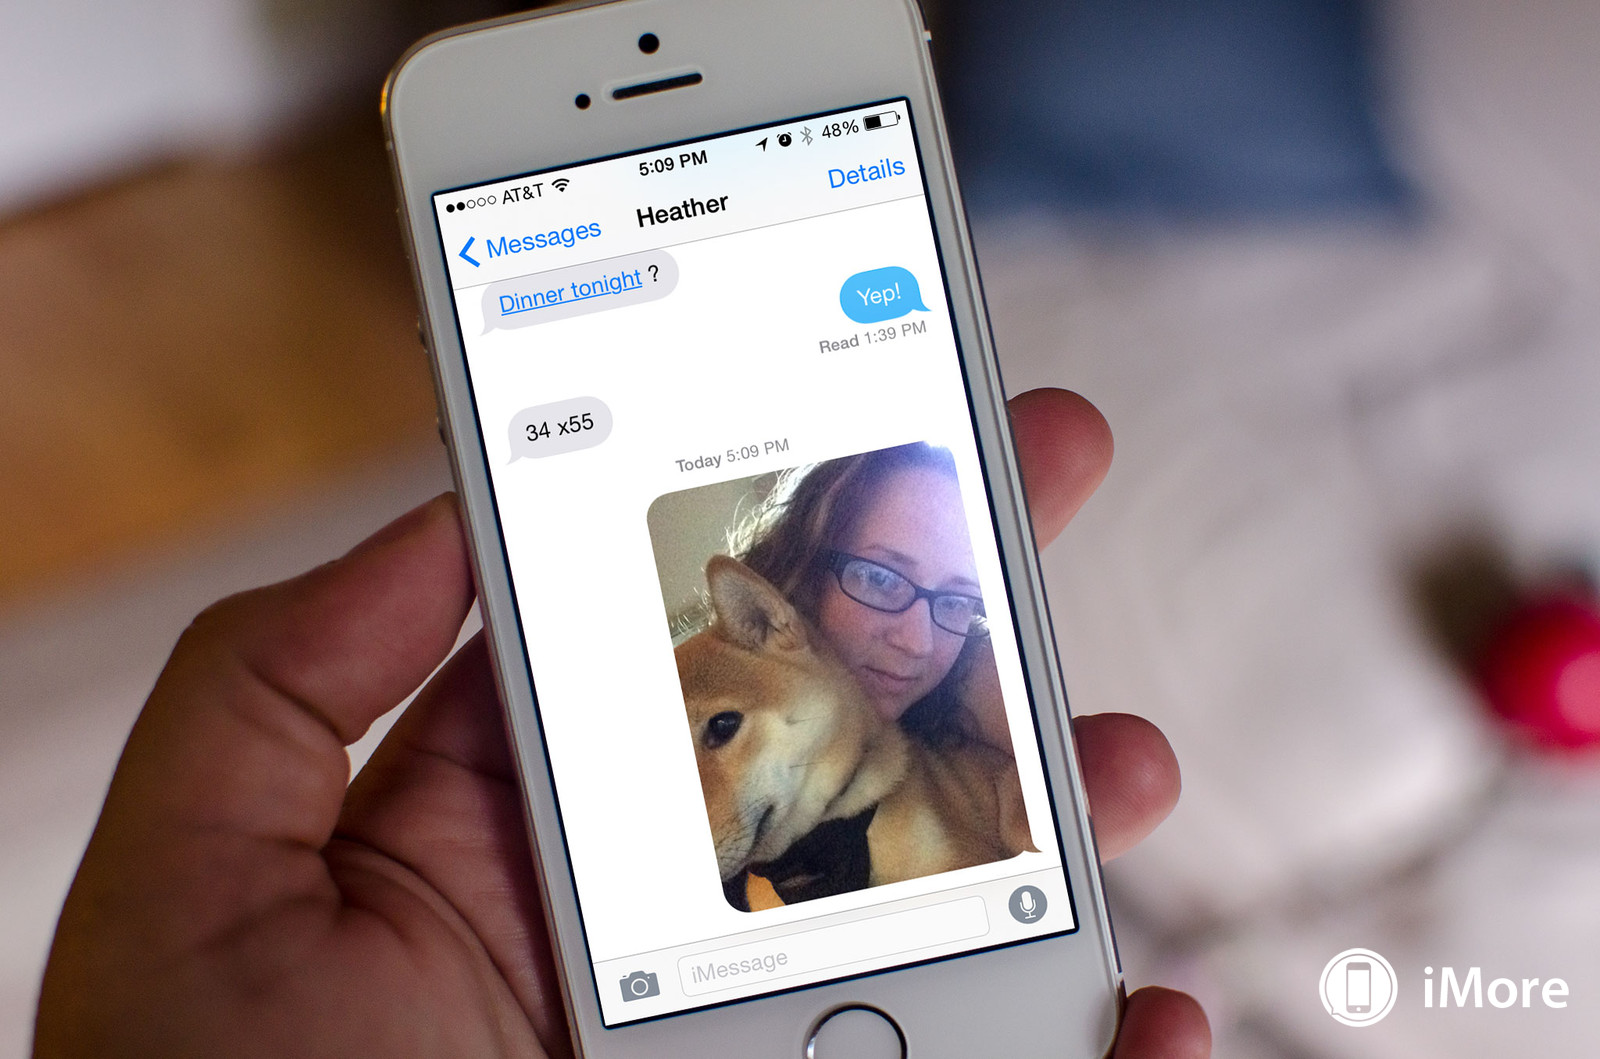 How to quickly send a photo or video selfie with iMessage